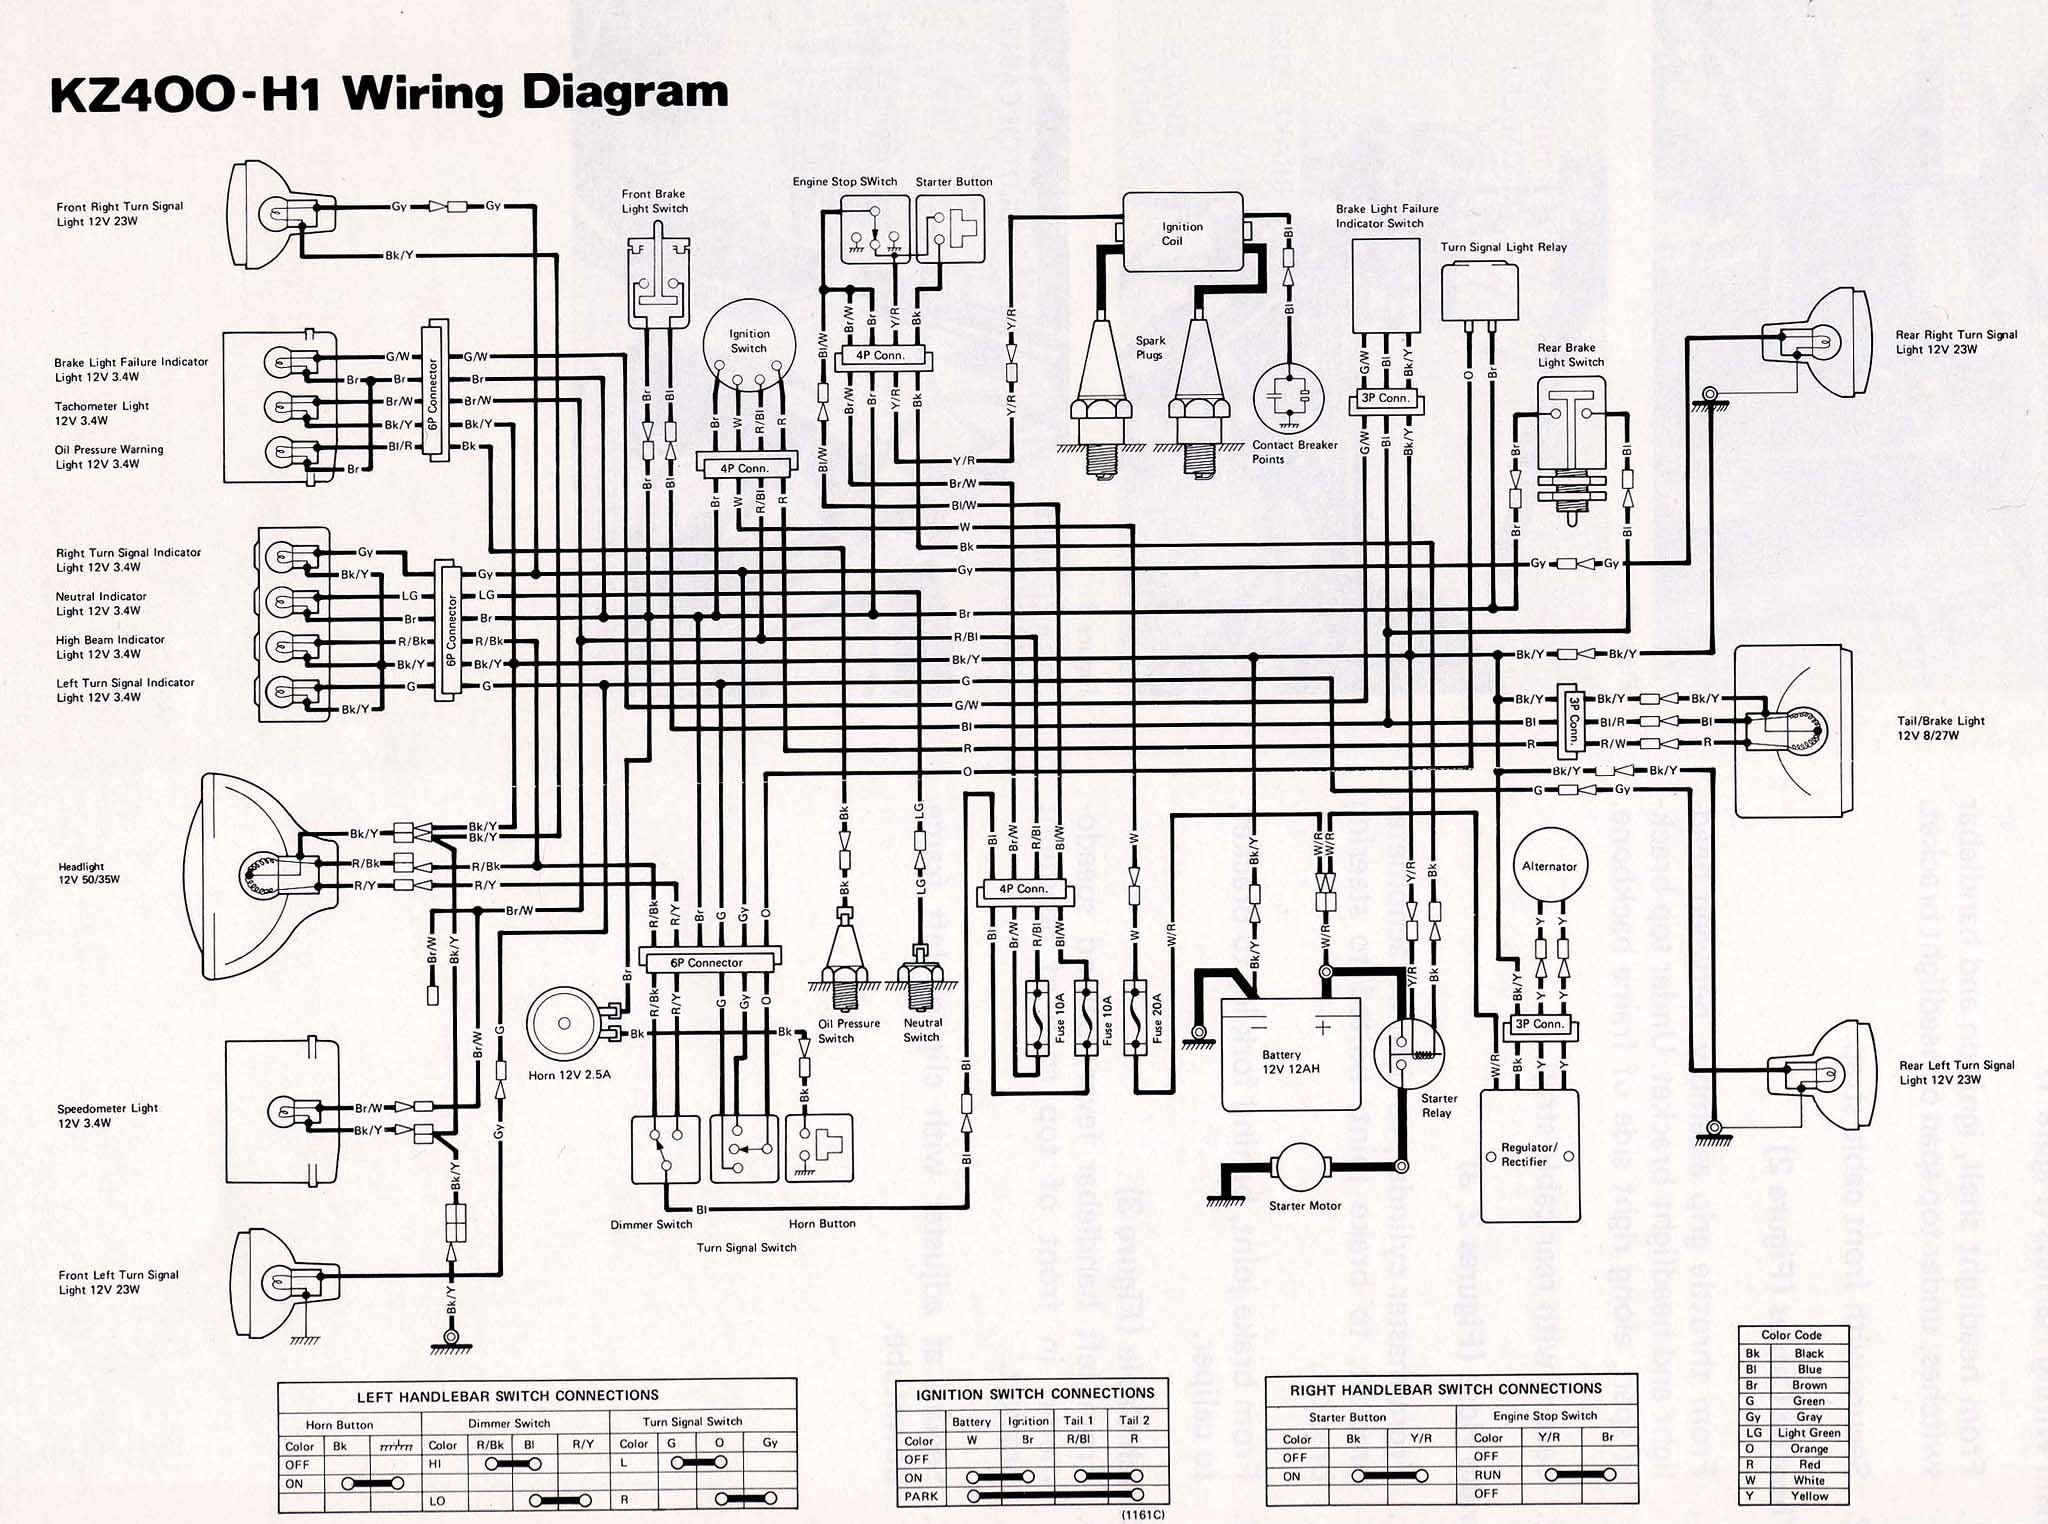 1977 kawasaki kz1000 wiring diagram generac 100 amp automatic transfer switch 1981 kz250 honda cr250r